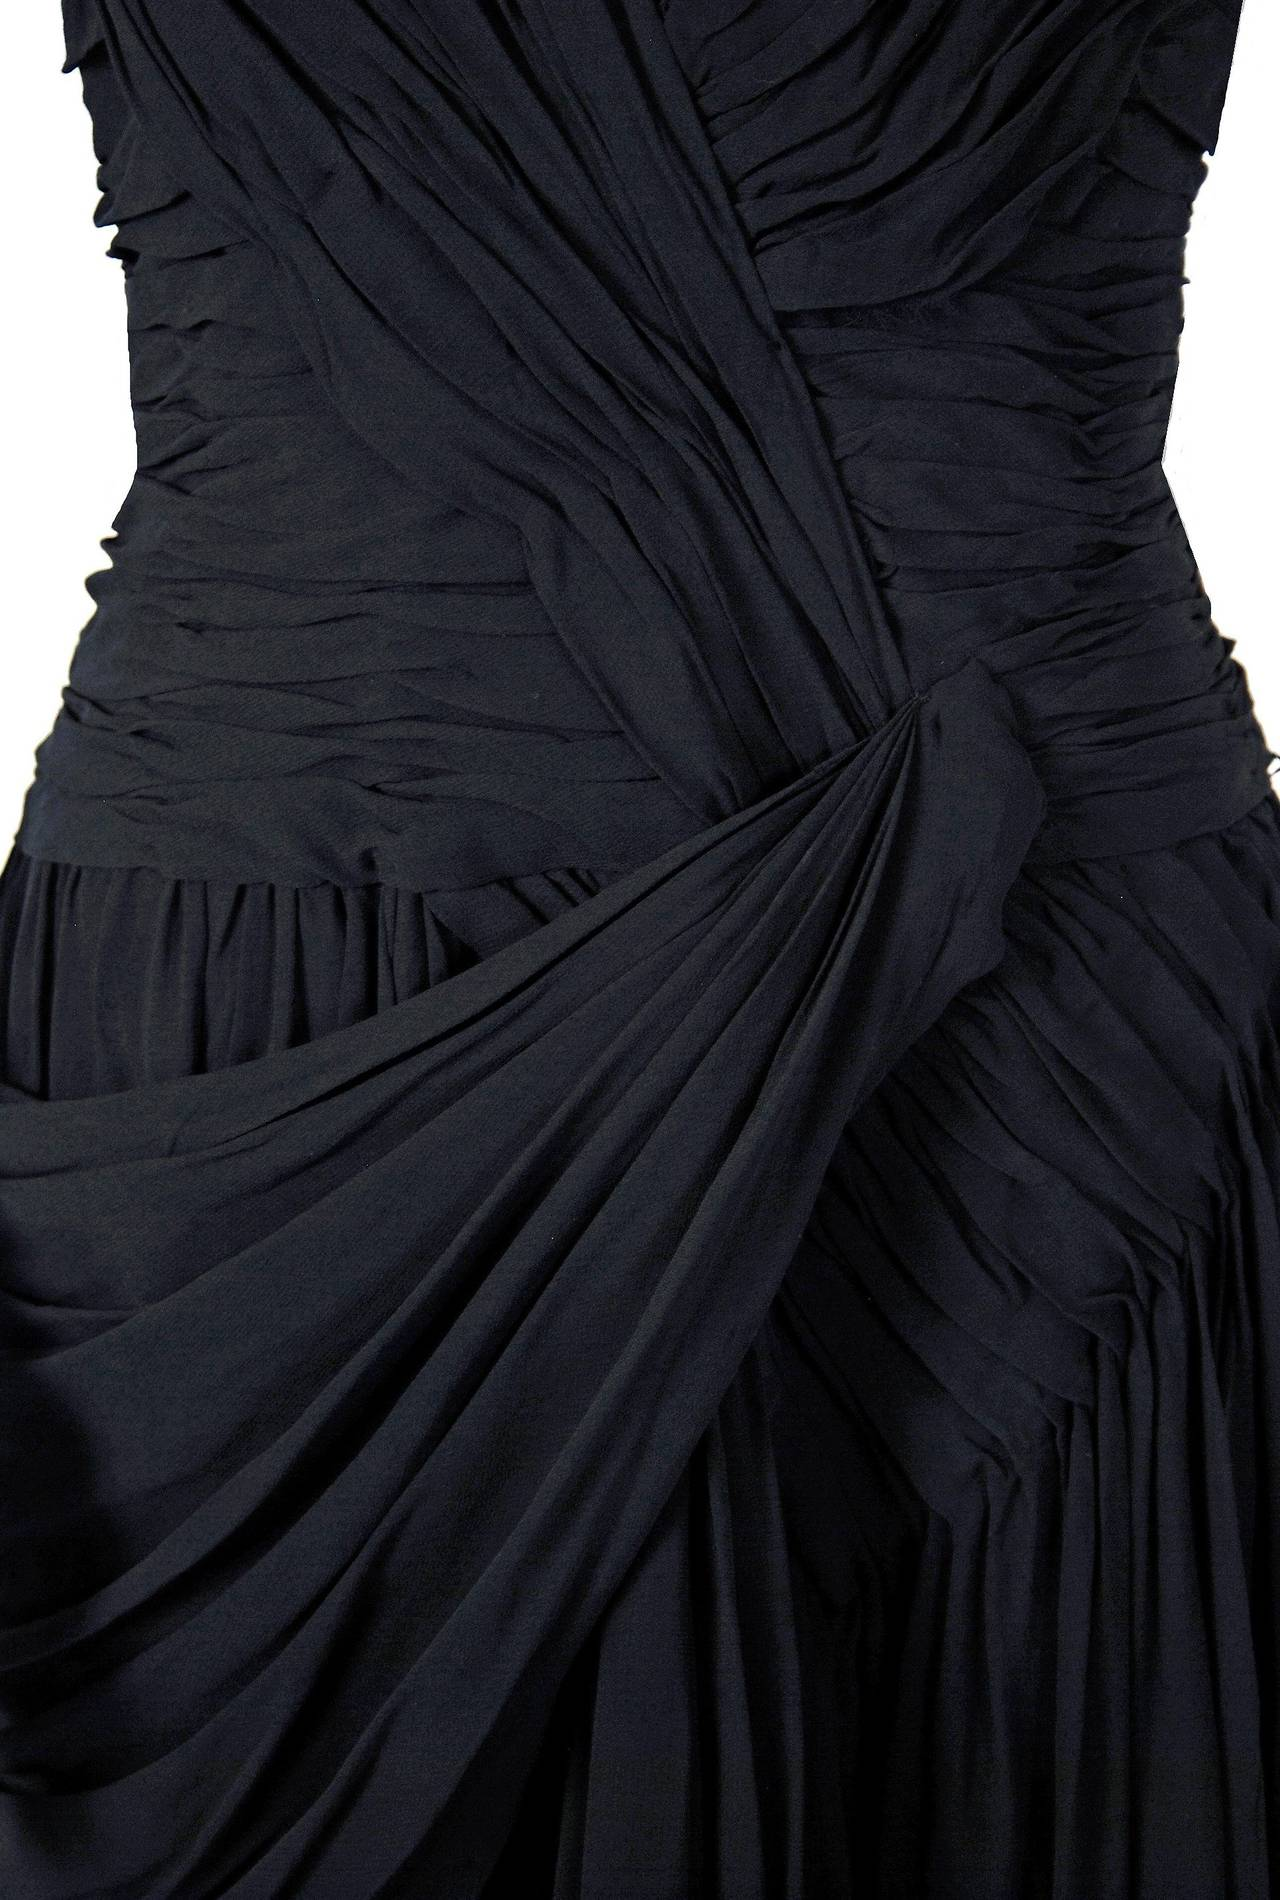 Women's 1950's French Couture Heavily-Pleated Black Chiffon One-Shoulder Party Dress For Sale